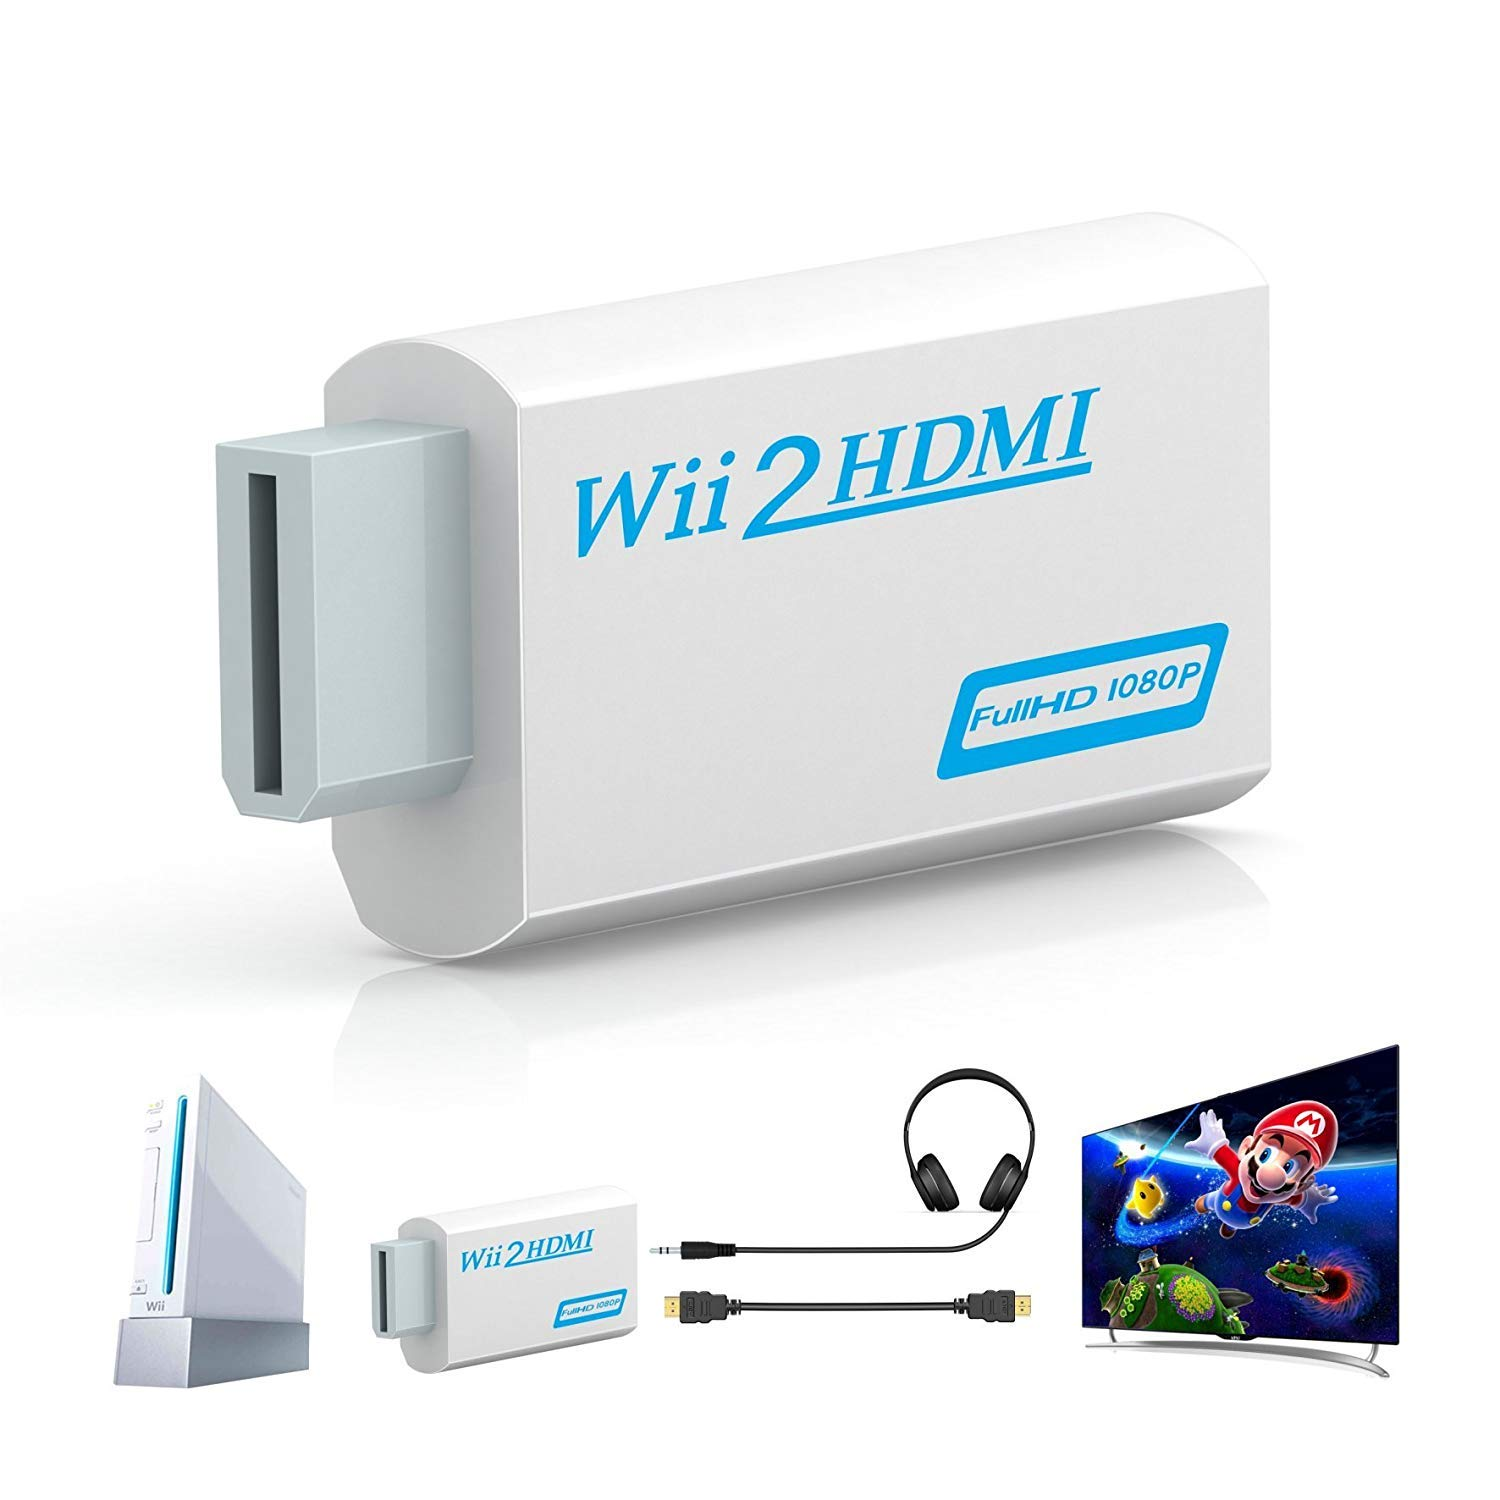 LSZZTY Wii to HDMI Converter - Supports All Wii Display Modes,1080p 720P HD Wii to HDMI Converter Output 480i Upscaling Adapter, Adapters Converter